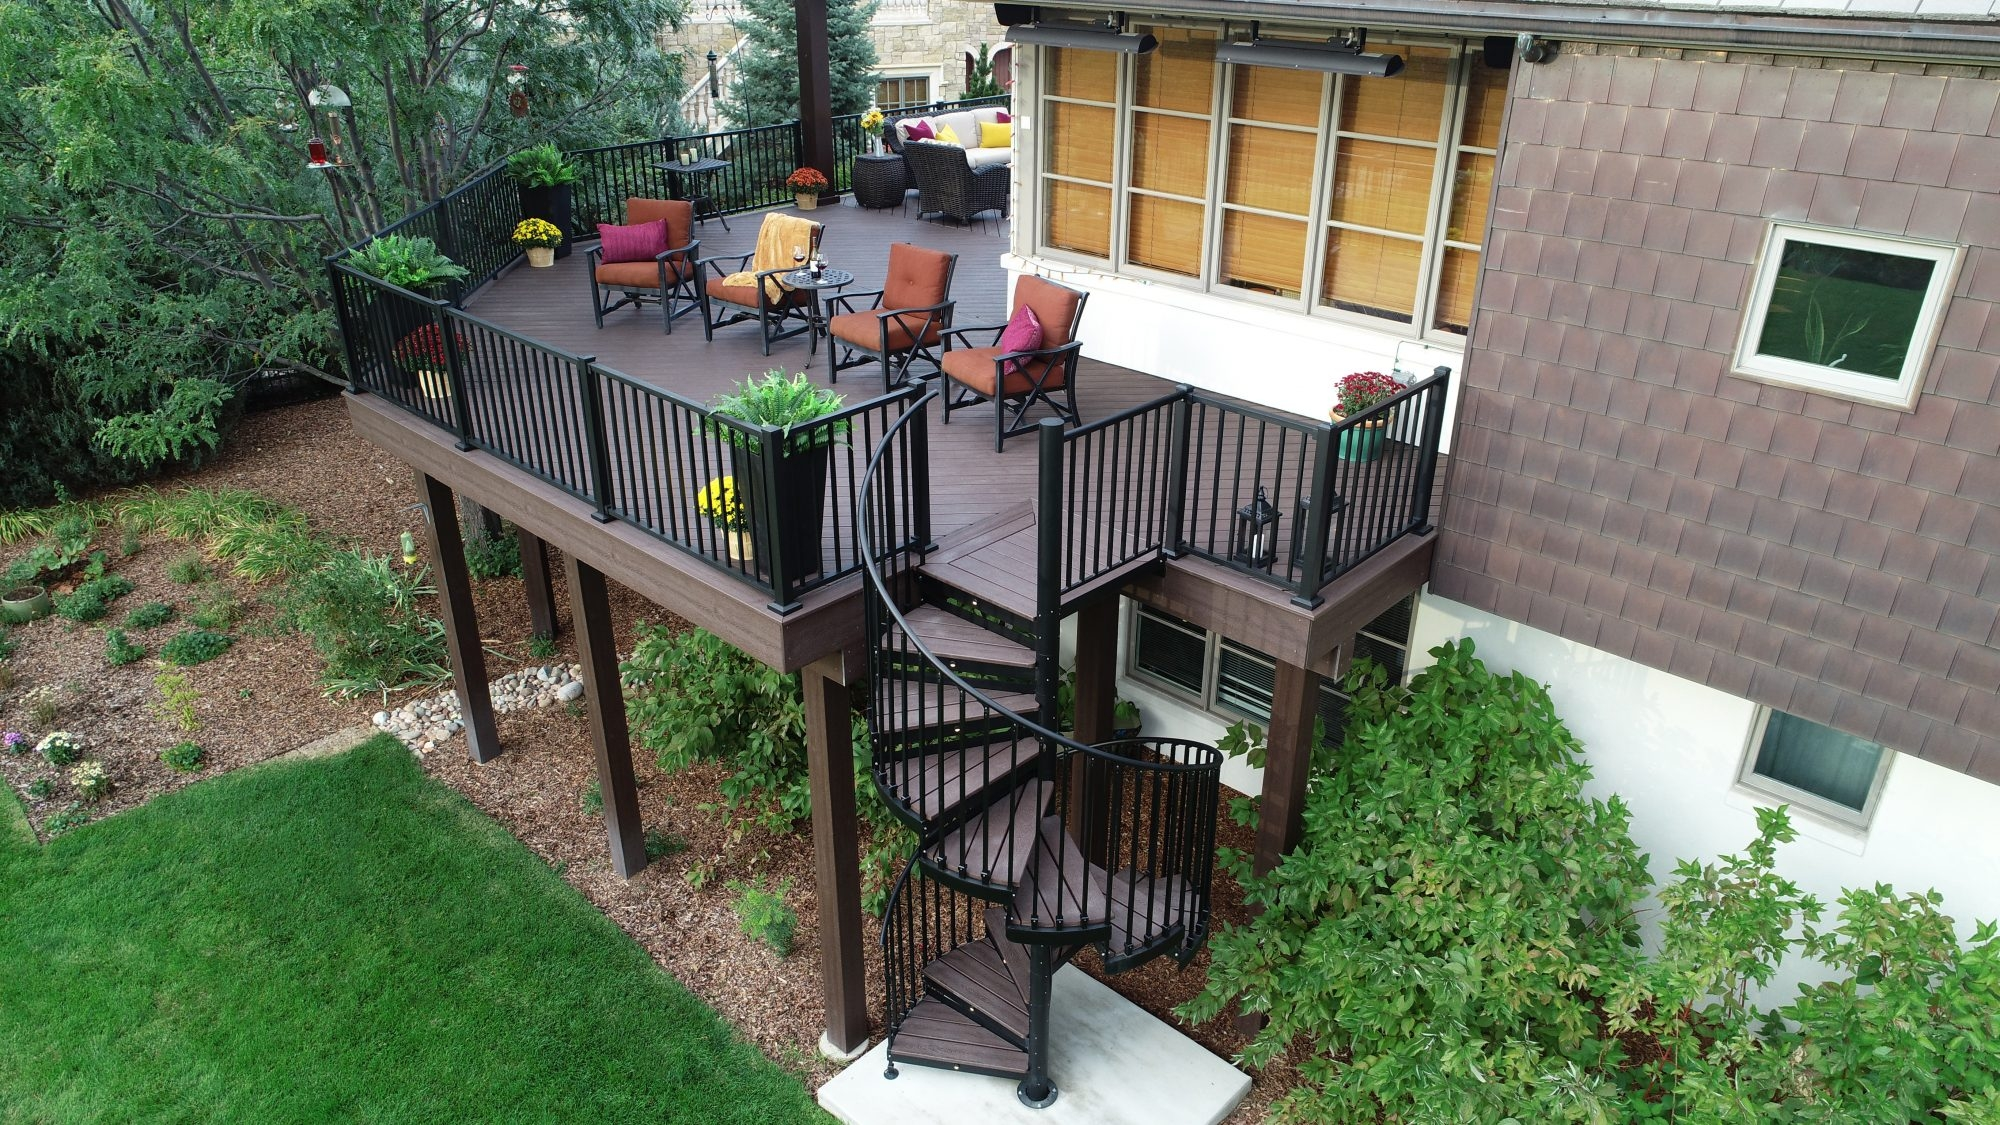 Discover The Ultimate Staircase Alternative Trex Spiral Stairs   Trex Spiral Stairs Cost   Stair Treads   Composite   Stair Case   Steel   Handrail